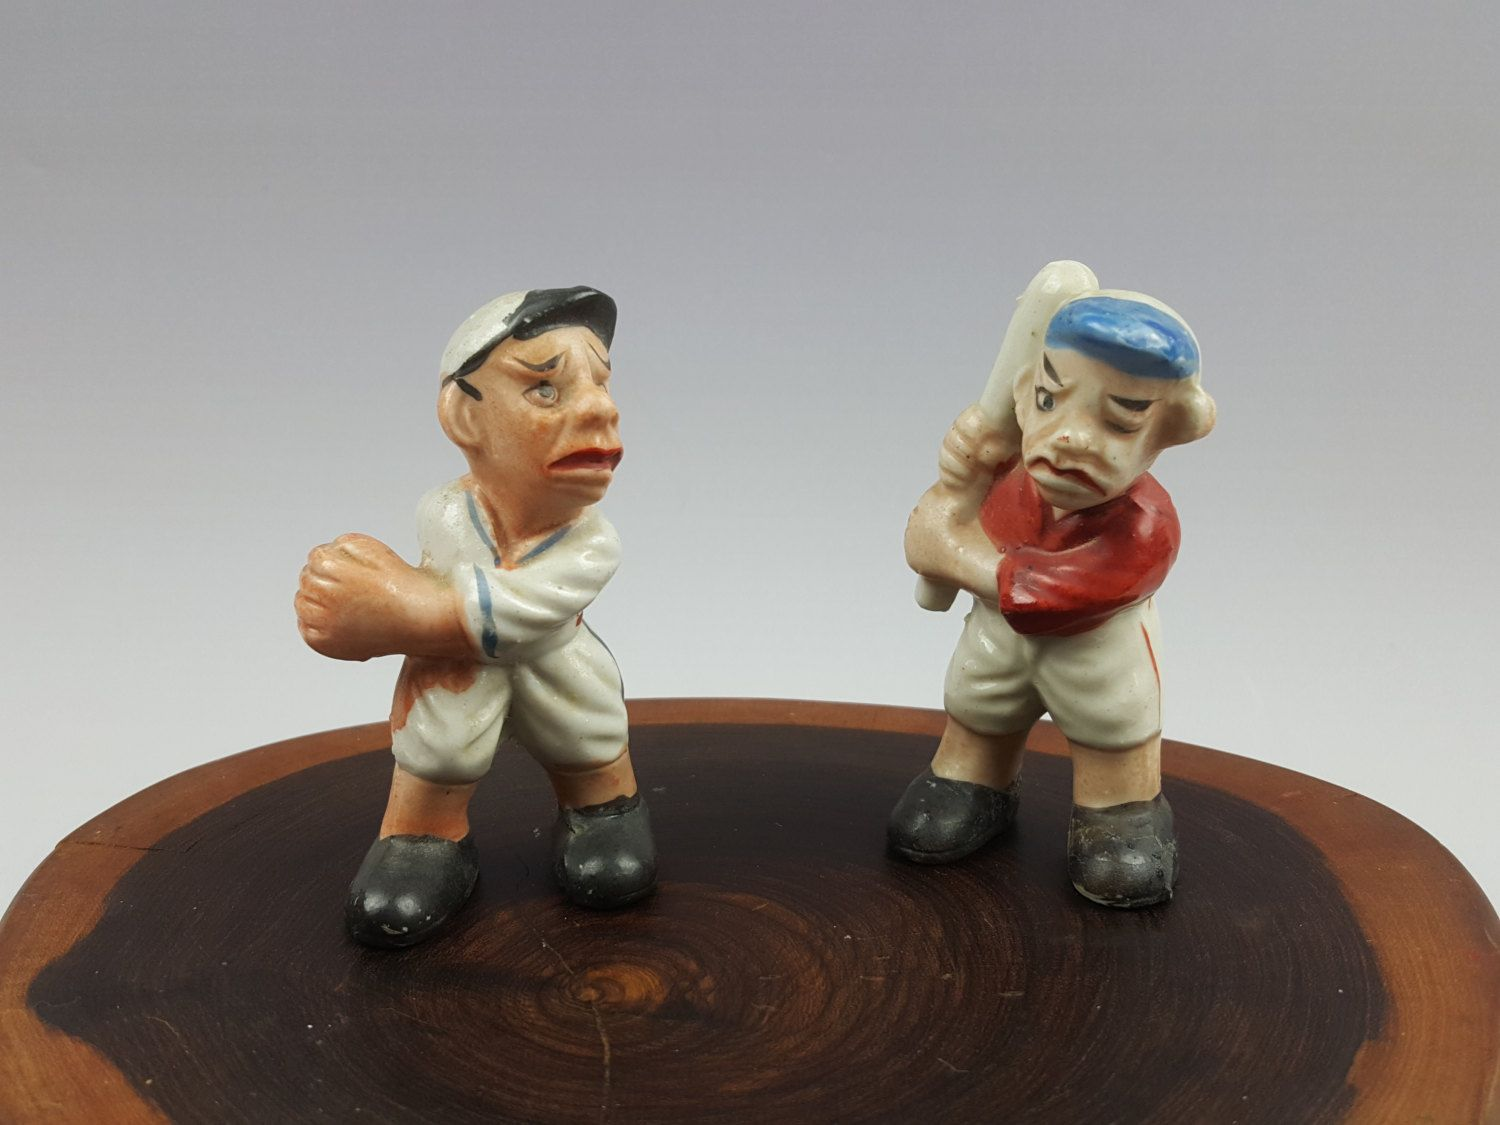 Vintage ugly baseball player figurines pitcher and batter made in Japan by CircularVintage on Etsy